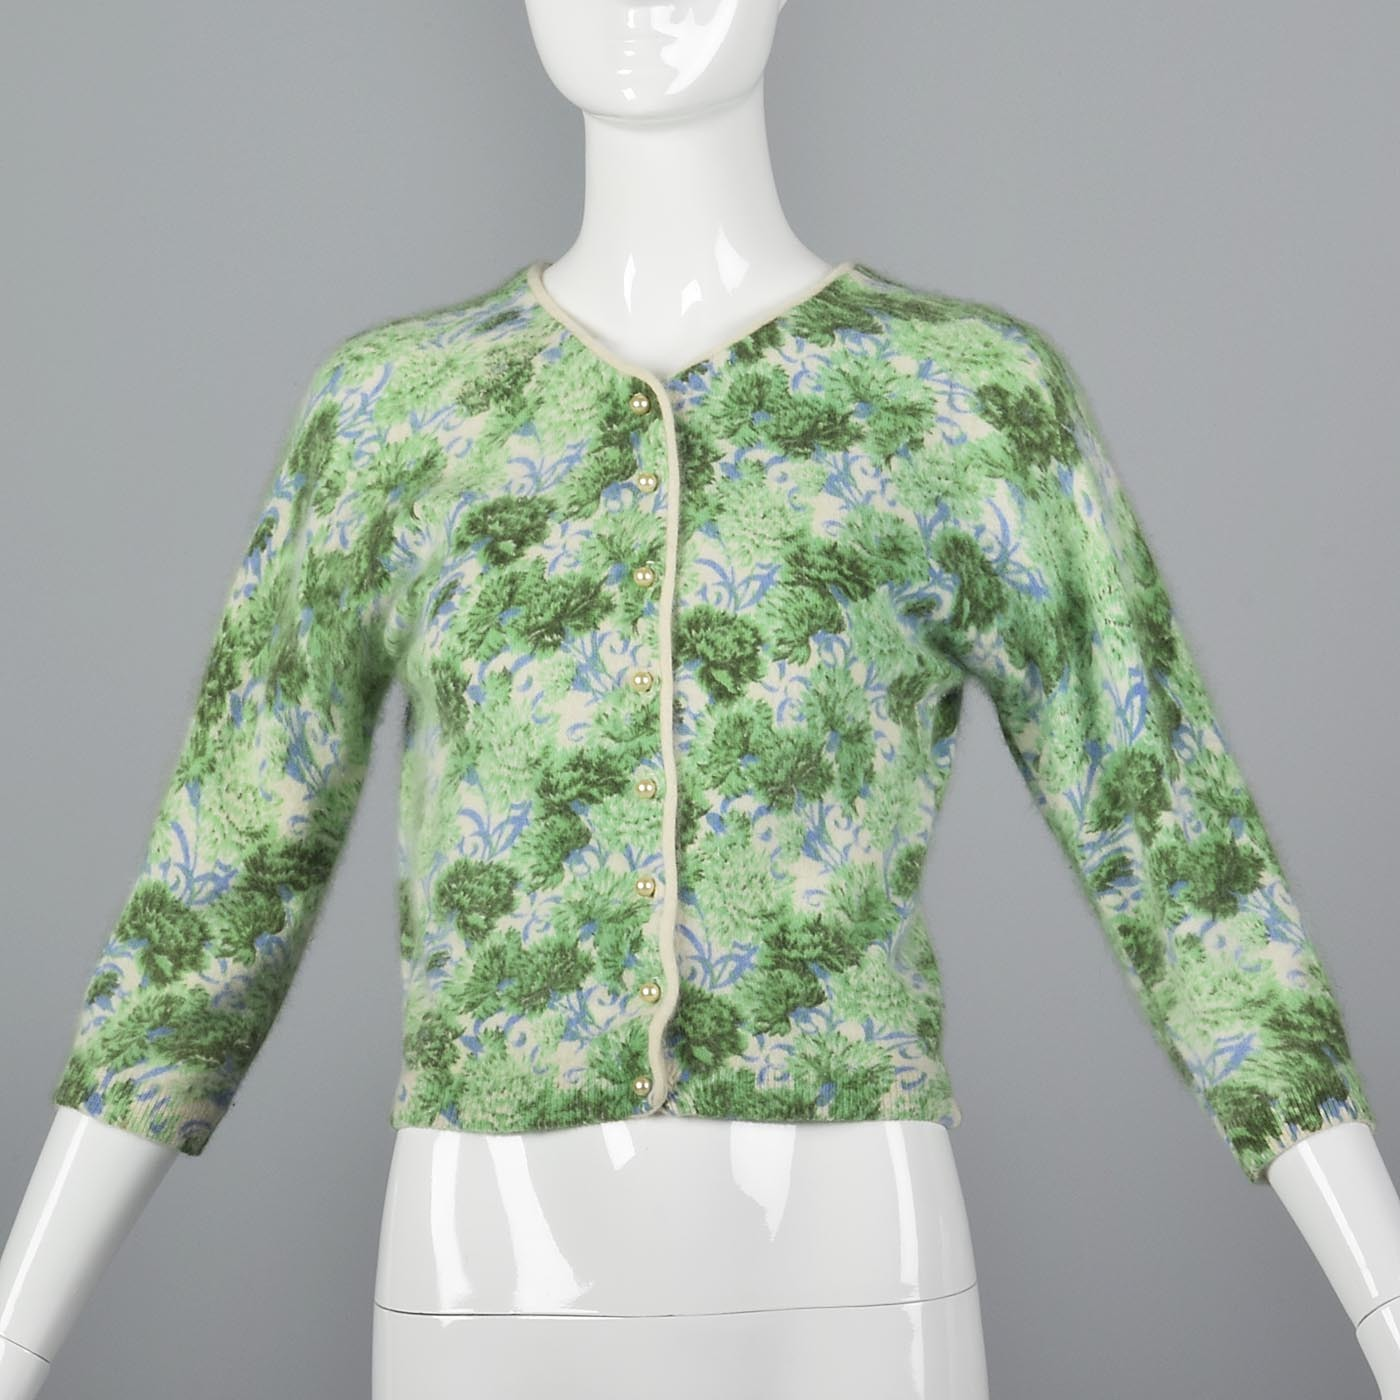 1960s Green and Blue Floral Print Angora Sweater